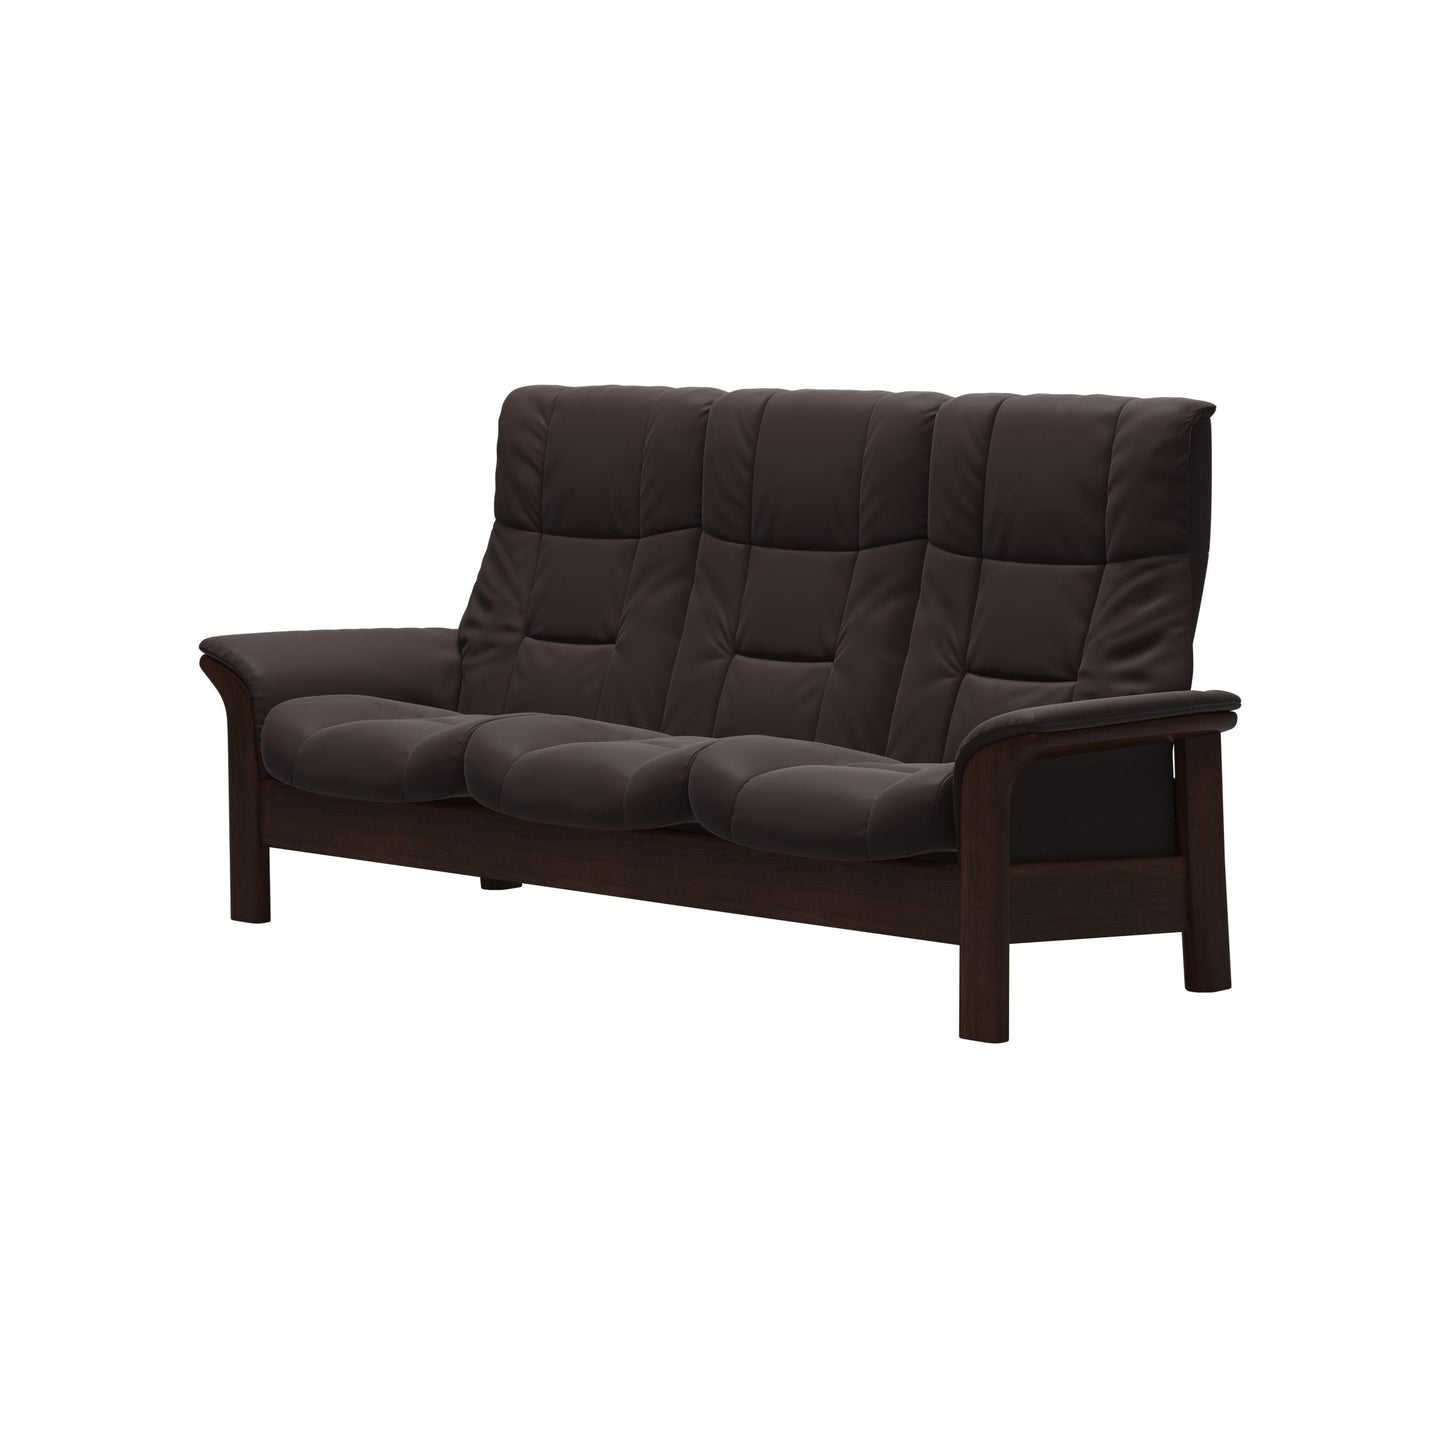 Stressless® Windsor (M) 3 seater High back